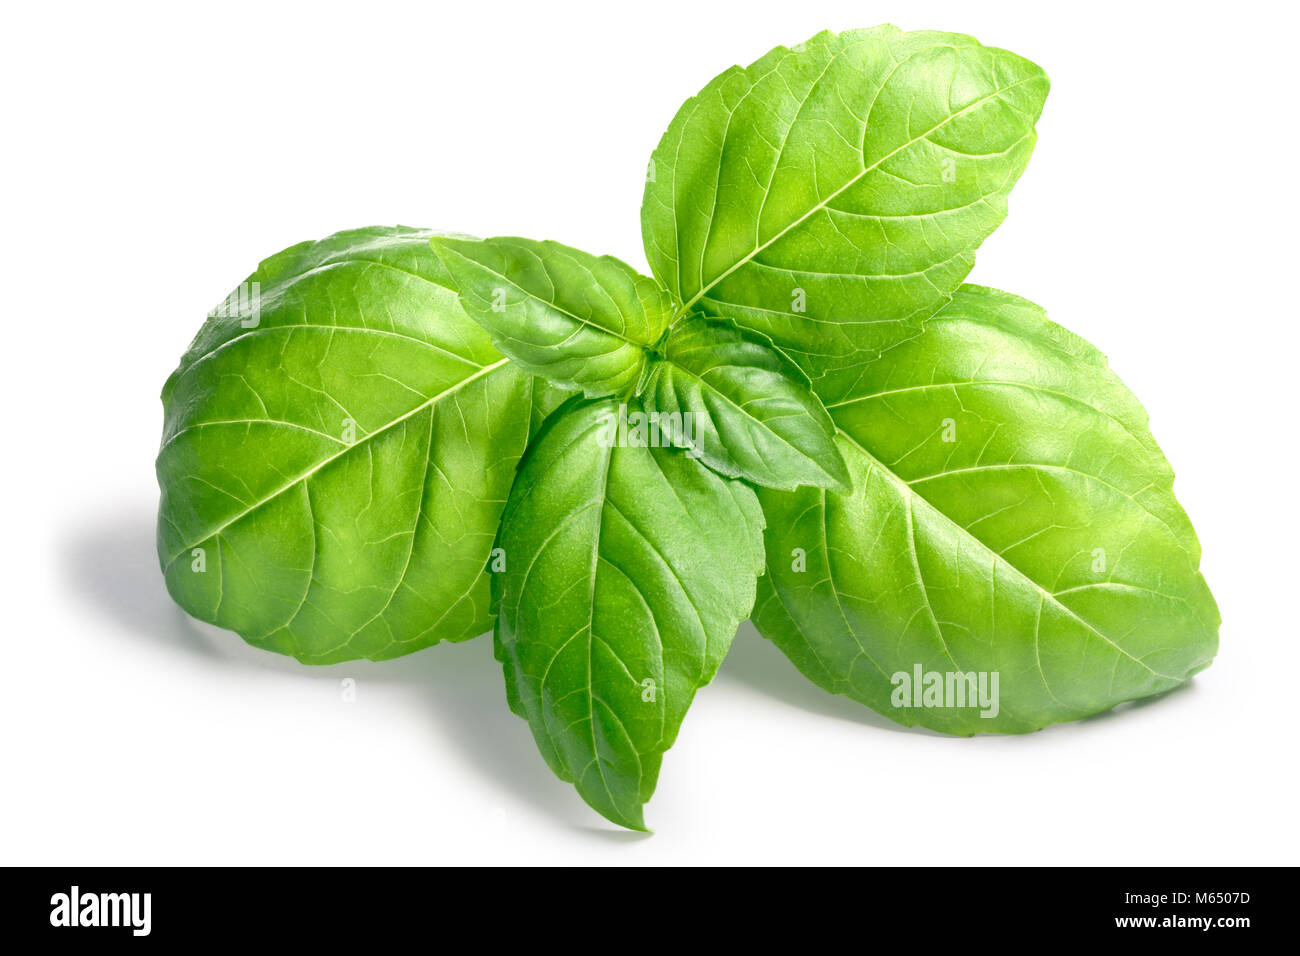 Basil leaves (Ocimum basilicum). Shadows separated, clipping paths: https://goo.gl/qQ88ZY - Stock Image